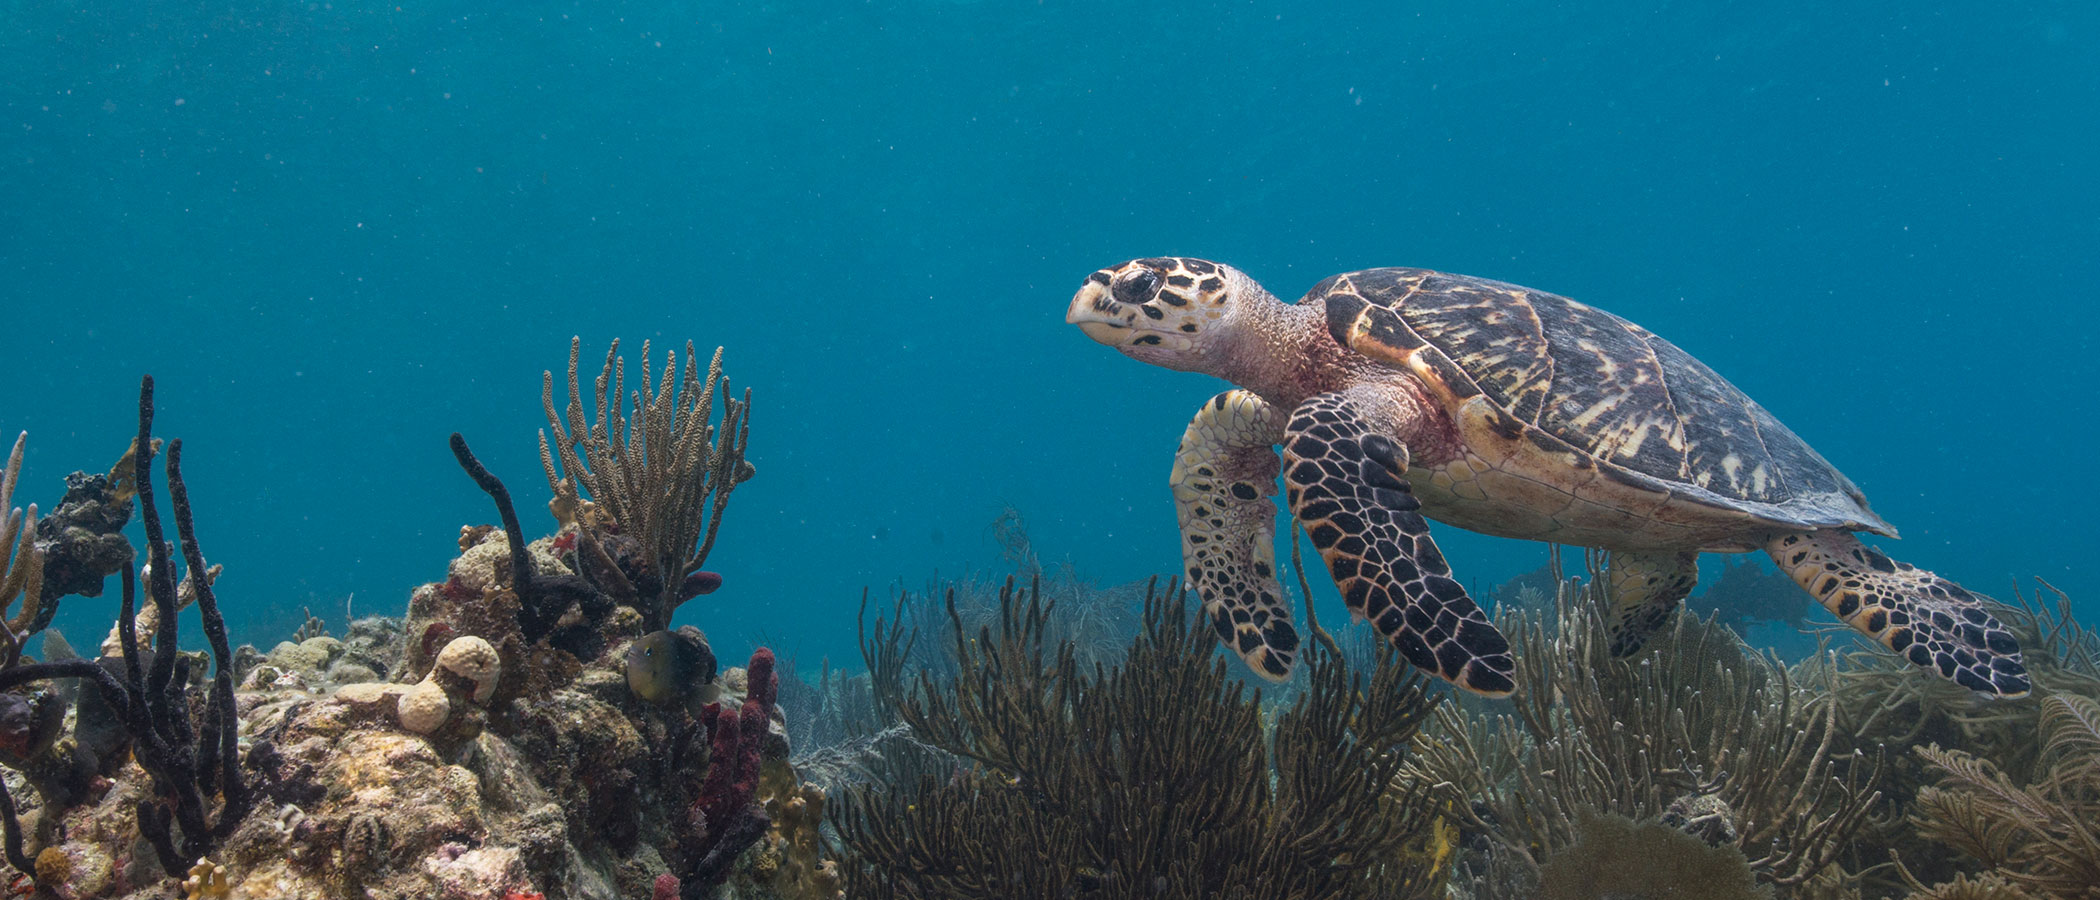 A sea turtle swimming above a coral reef.